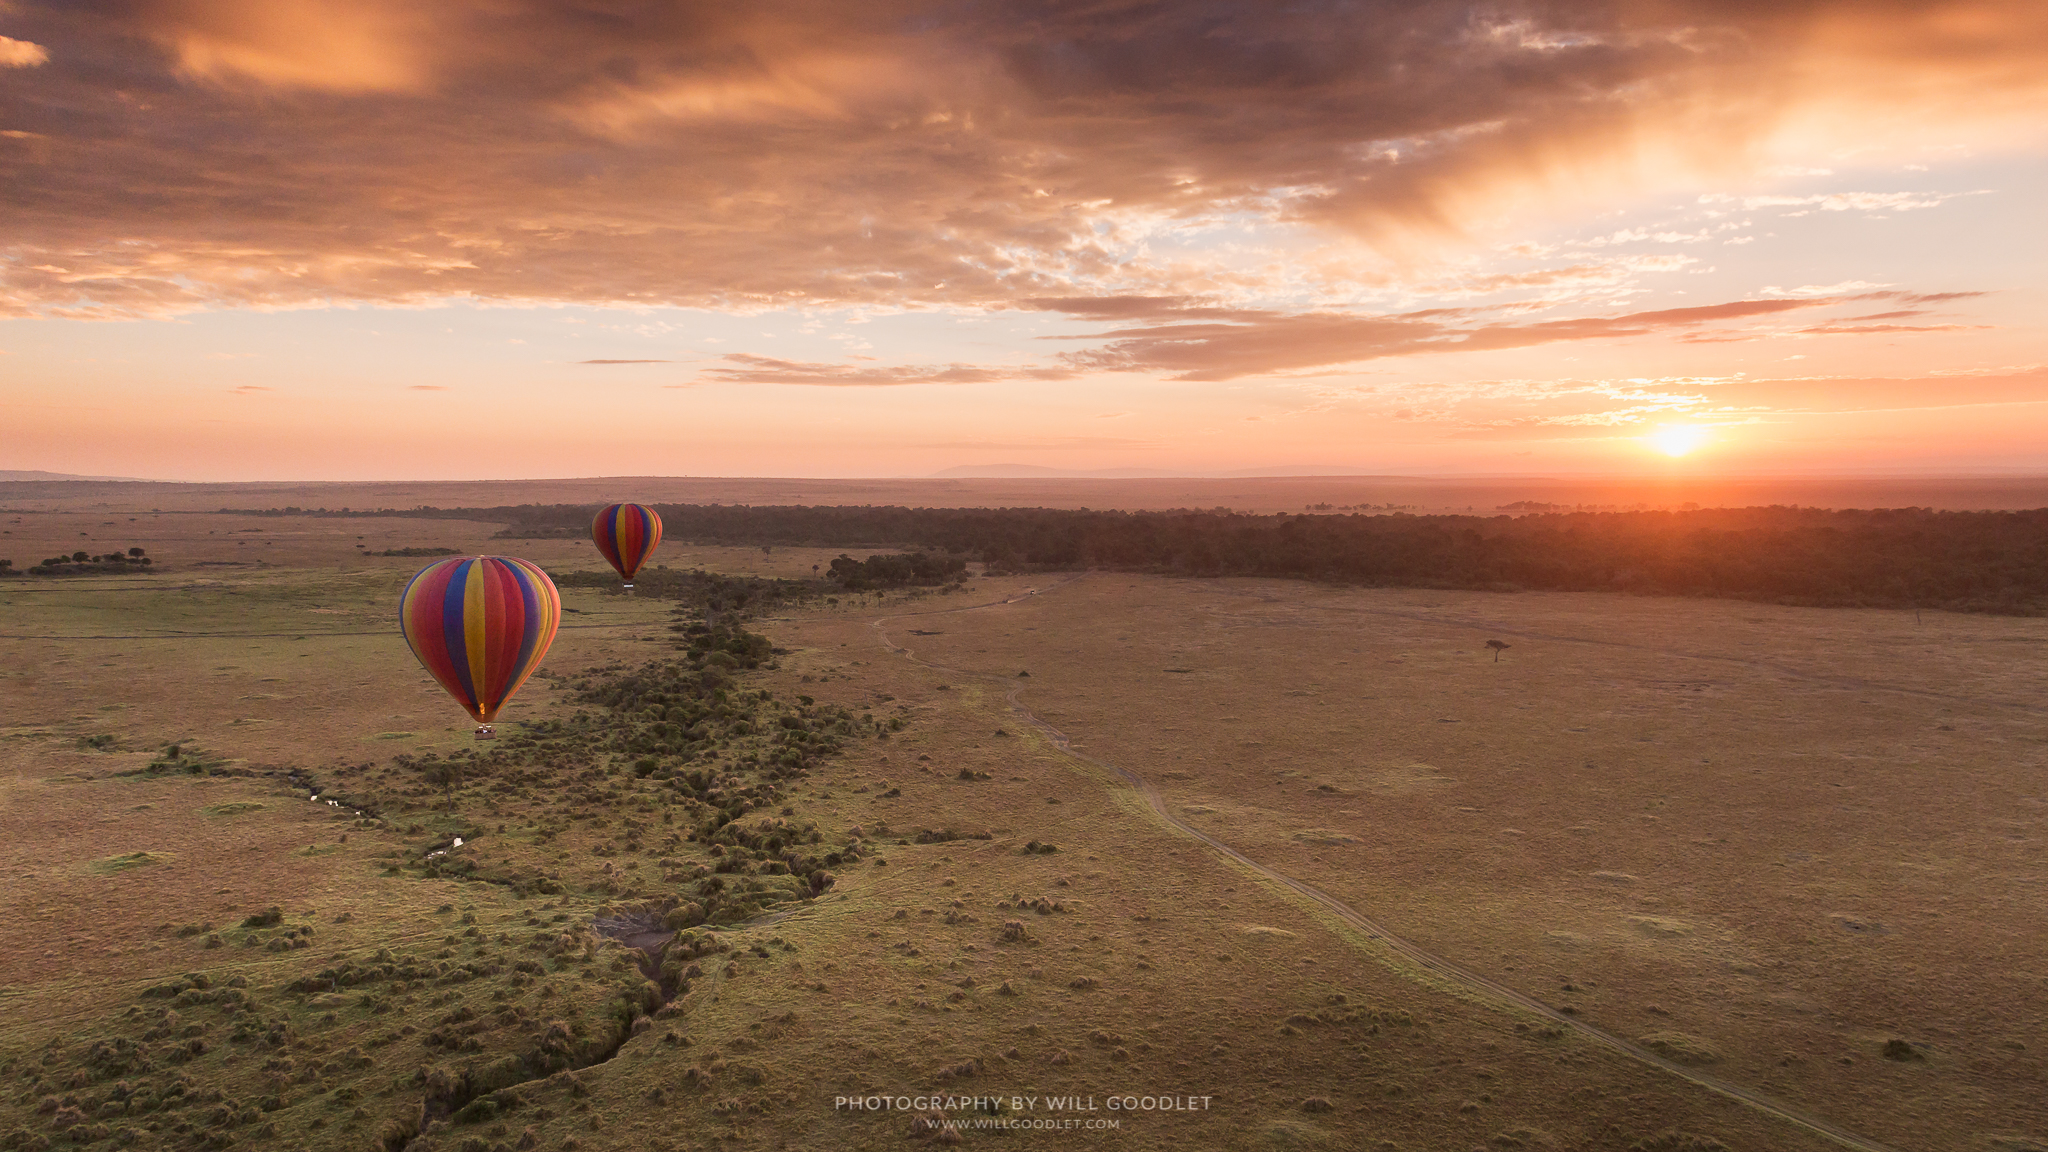 Sunrise photographed from a hot air balloon over the great migration and the Masai Mara, Kenya - Will Goodlet